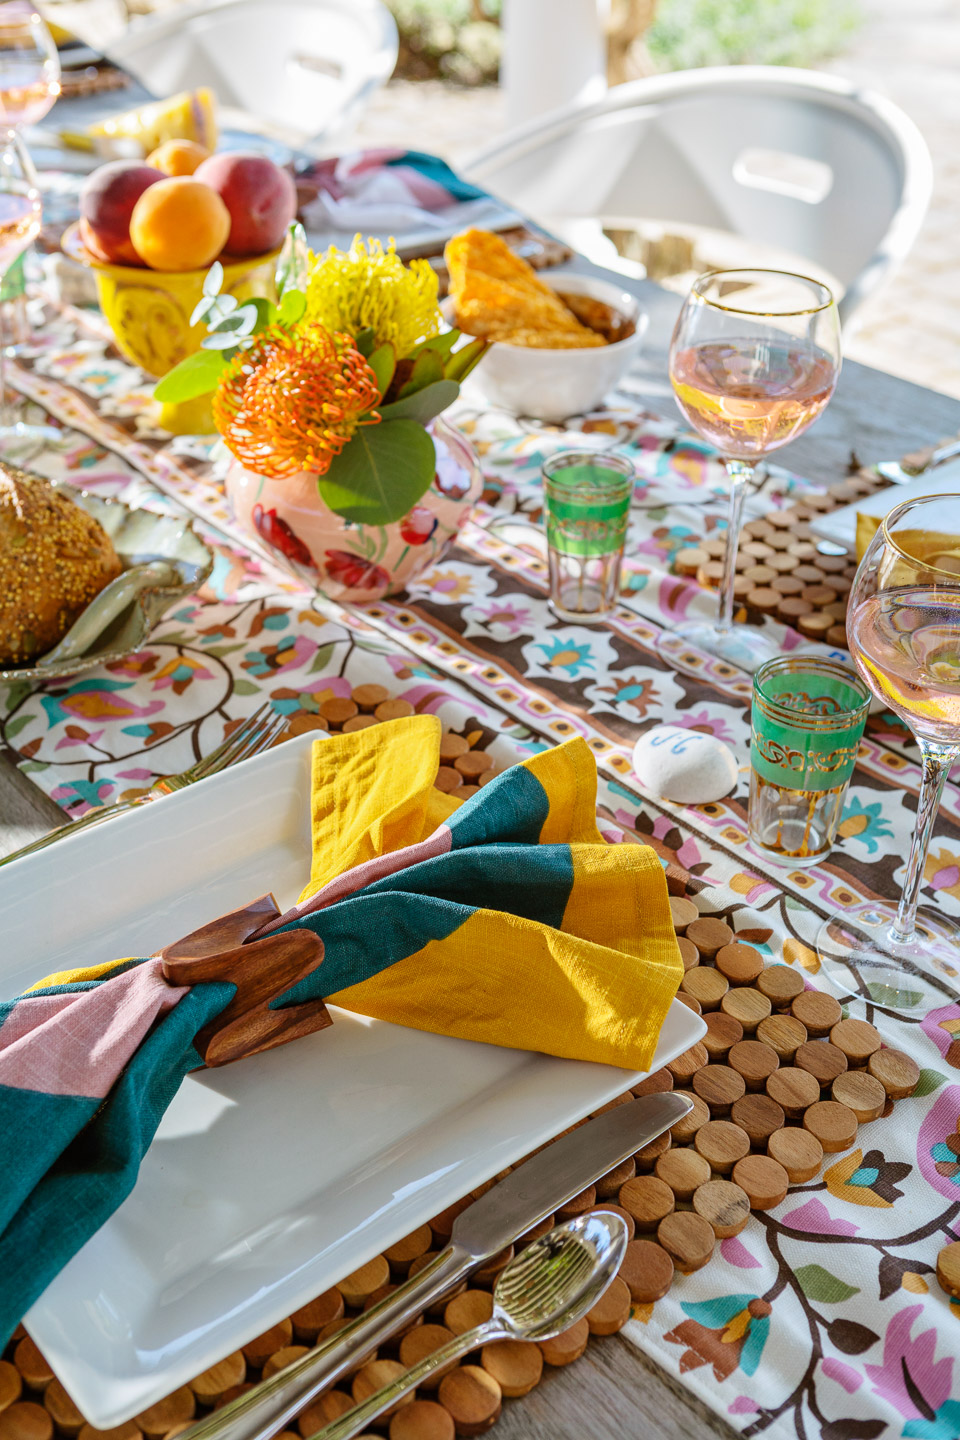 outdoor dining, al fresco dining, tablescape, table decor, table setting